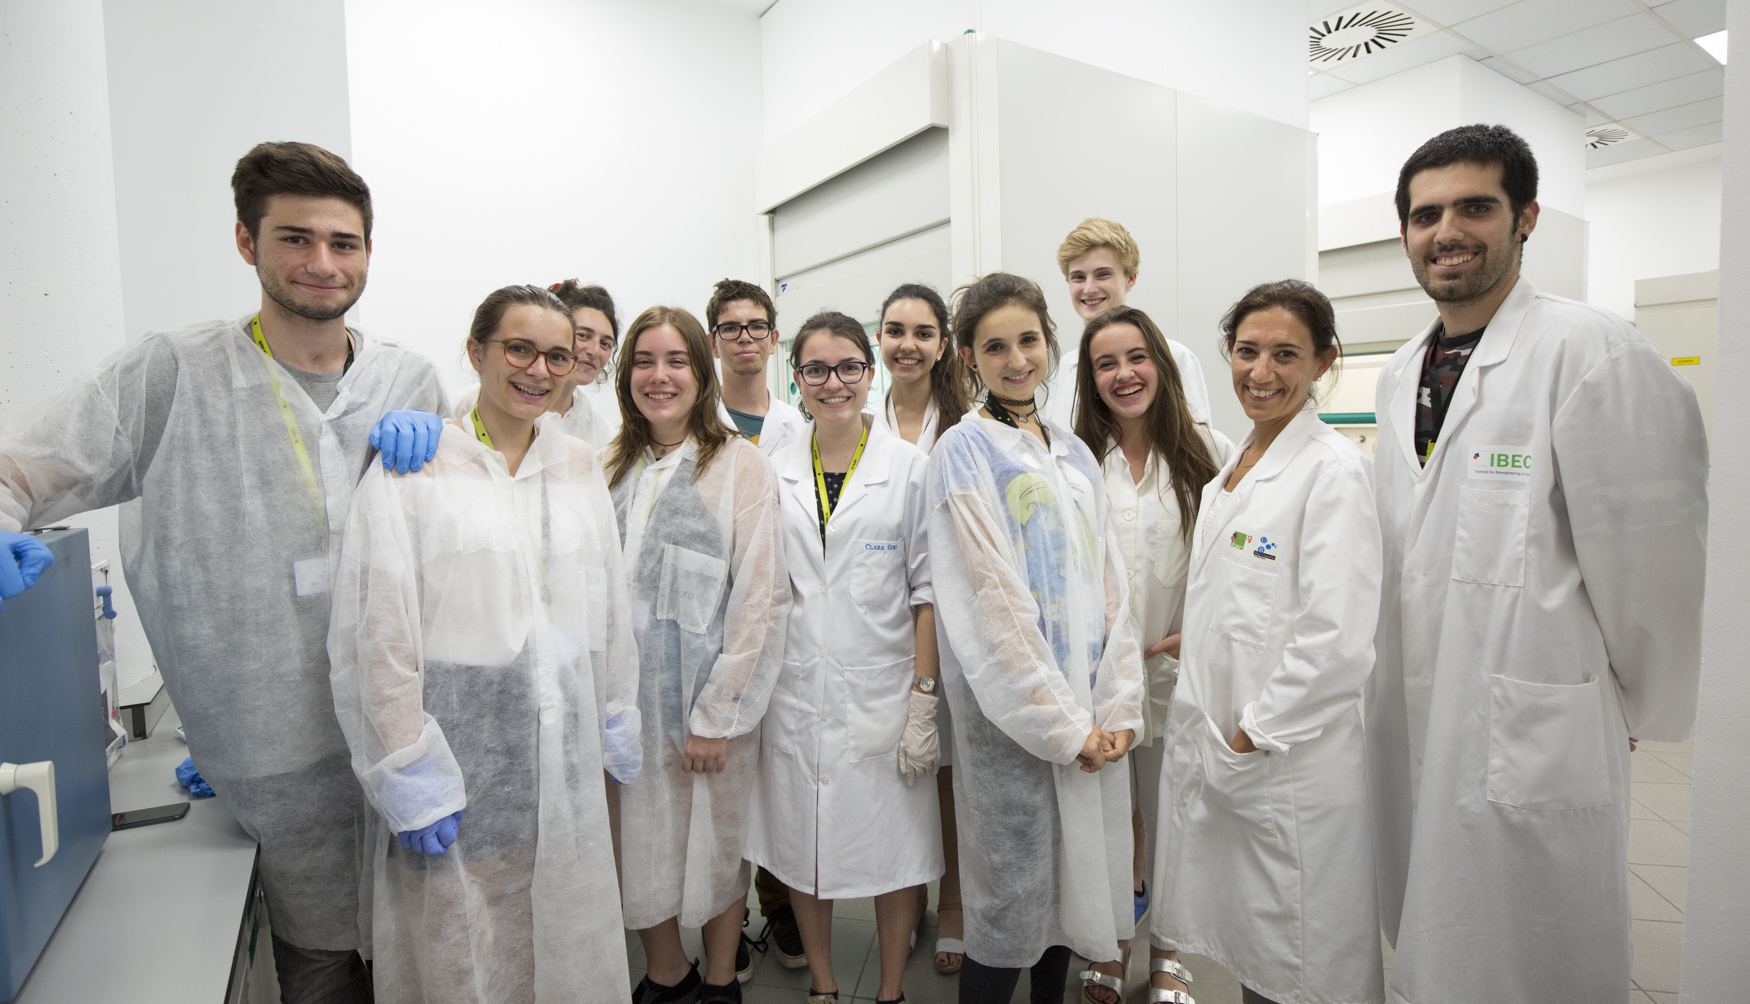 Elisabeth Engel stimulating scientific talent in the Barcelona International Youth Science Challenge